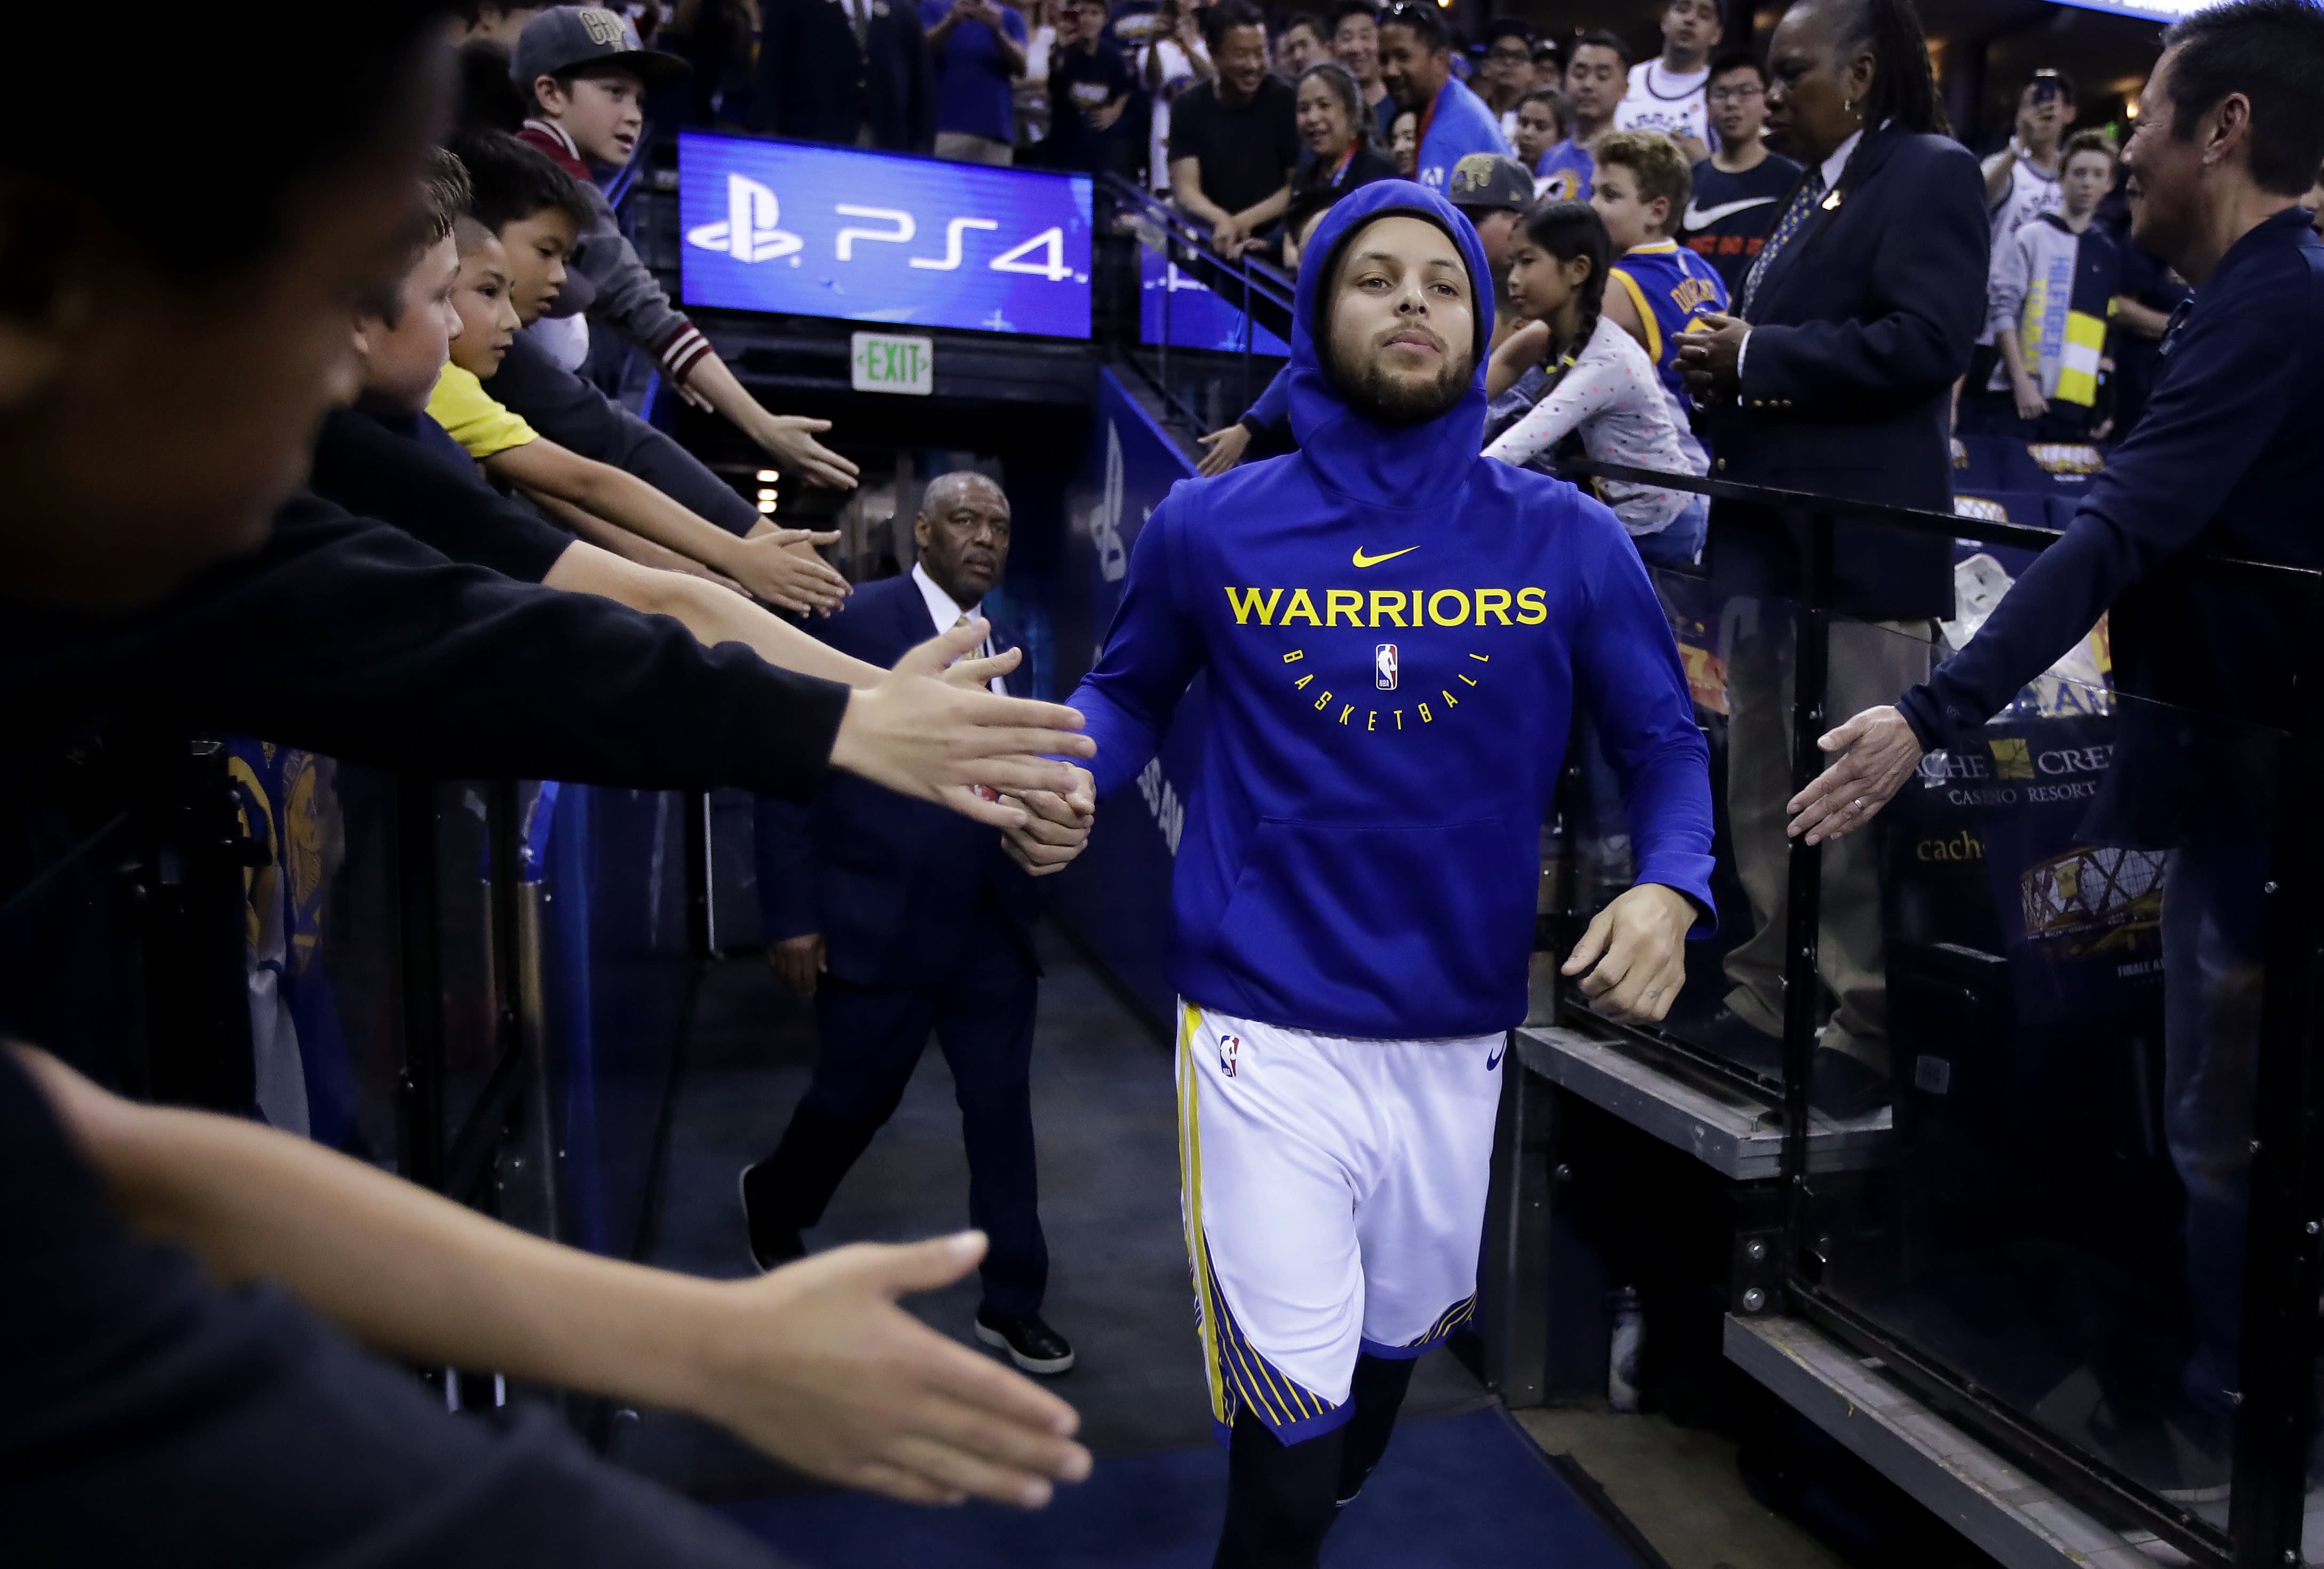 21e681a2f004d4 Golden State Warriors' Stephen Curry greets fans as he takes the court for warm  up shots prior to an NBA basketball game against the Los Angeles Clippers  ...